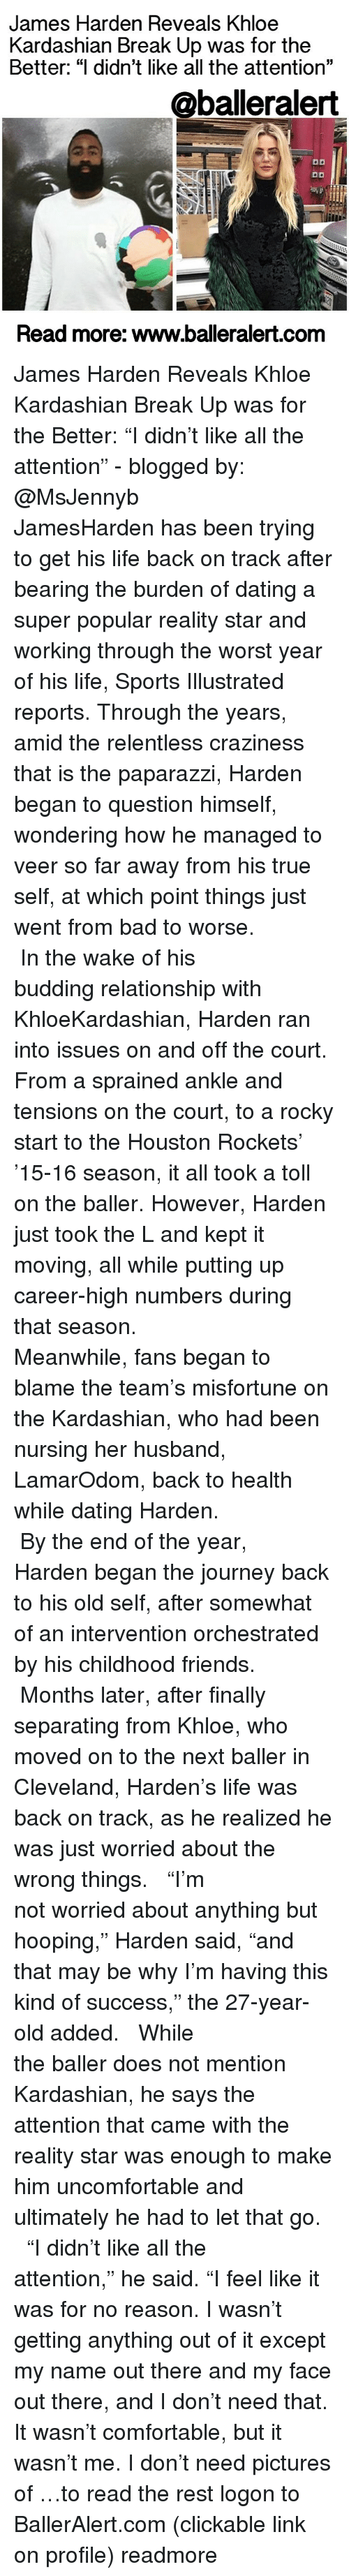 """Khloe Kardashian, Memes, and Cleveland: James Harden Reveals Khloe  Kardashian Break Up was for the  Better: """"I didn't like all the attention""""  @balleralert  Read more: www.balleralert.com James Harden Reveals Khloe Kardashian Break Up was for the Better: """"I didn't like all the attention"""" - blogged by: @MsJennyb ⠀⠀⠀⠀⠀⠀⠀⠀⠀ ⠀⠀⠀⠀⠀⠀⠀⠀⠀ JamesHarden has been trying to get his life back on track after bearing the burden of dating a super popular reality star and working through the worst year of his life, Sports Illustrated reports. Through the years, amid the relentless craziness that is the paparazzi, Harden began to question himself, wondering how he managed to veer so far away from his true self, at which point things just went from bad to worse. ⠀⠀⠀⠀⠀⠀⠀⠀⠀ ⠀⠀⠀⠀⠀⠀⠀⠀⠀ In the wake of his budding relationship with KhloeKardashian, Harden ran into issues on and off the court. From a sprained ankle and tensions on the court, to a rocky start to the Houston Rockets' '15-16 season, it all took a toll on the baller. However, Harden just took the L and kept it moving, all while putting up career-high numbers during that season. ⠀⠀⠀⠀⠀⠀⠀⠀⠀ ⠀⠀⠀⠀⠀⠀⠀⠀⠀ Meanwhile, fans began to blame the team's misfortune on the Kardashian, who had been nursing her husband, LamarOdom, back to health while dating Harden. ⠀⠀⠀⠀⠀⠀⠀⠀⠀ ⠀⠀⠀⠀⠀⠀⠀⠀⠀ By the end of the year, Harden began the journey back to his old self, after somewhat of an intervention orchestrated by his childhood friends. ⠀⠀⠀⠀⠀⠀⠀⠀⠀ ⠀⠀⠀⠀⠀⠀⠀⠀⠀ Months later, after finally separating from Khloe, who moved on to the next baller in Cleveland, Harden's life was back on track, as he realized he was just worried about the wrong things. ⠀⠀⠀⠀⠀⠀⠀⠀⠀ ⠀⠀⠀⠀⠀⠀⠀⠀⠀ """"I'm not worried about anything but hooping,"""" Harden said, """"and that may be why I'm having this kind of success,"""" the 27-year-old added. ⠀⠀⠀⠀⠀⠀⠀⠀⠀ ⠀⠀⠀⠀⠀⠀⠀⠀⠀ While the baller does not mention Kardashian, he says the attention that came with the reality star was enough to make him uncomfortable and ult"""